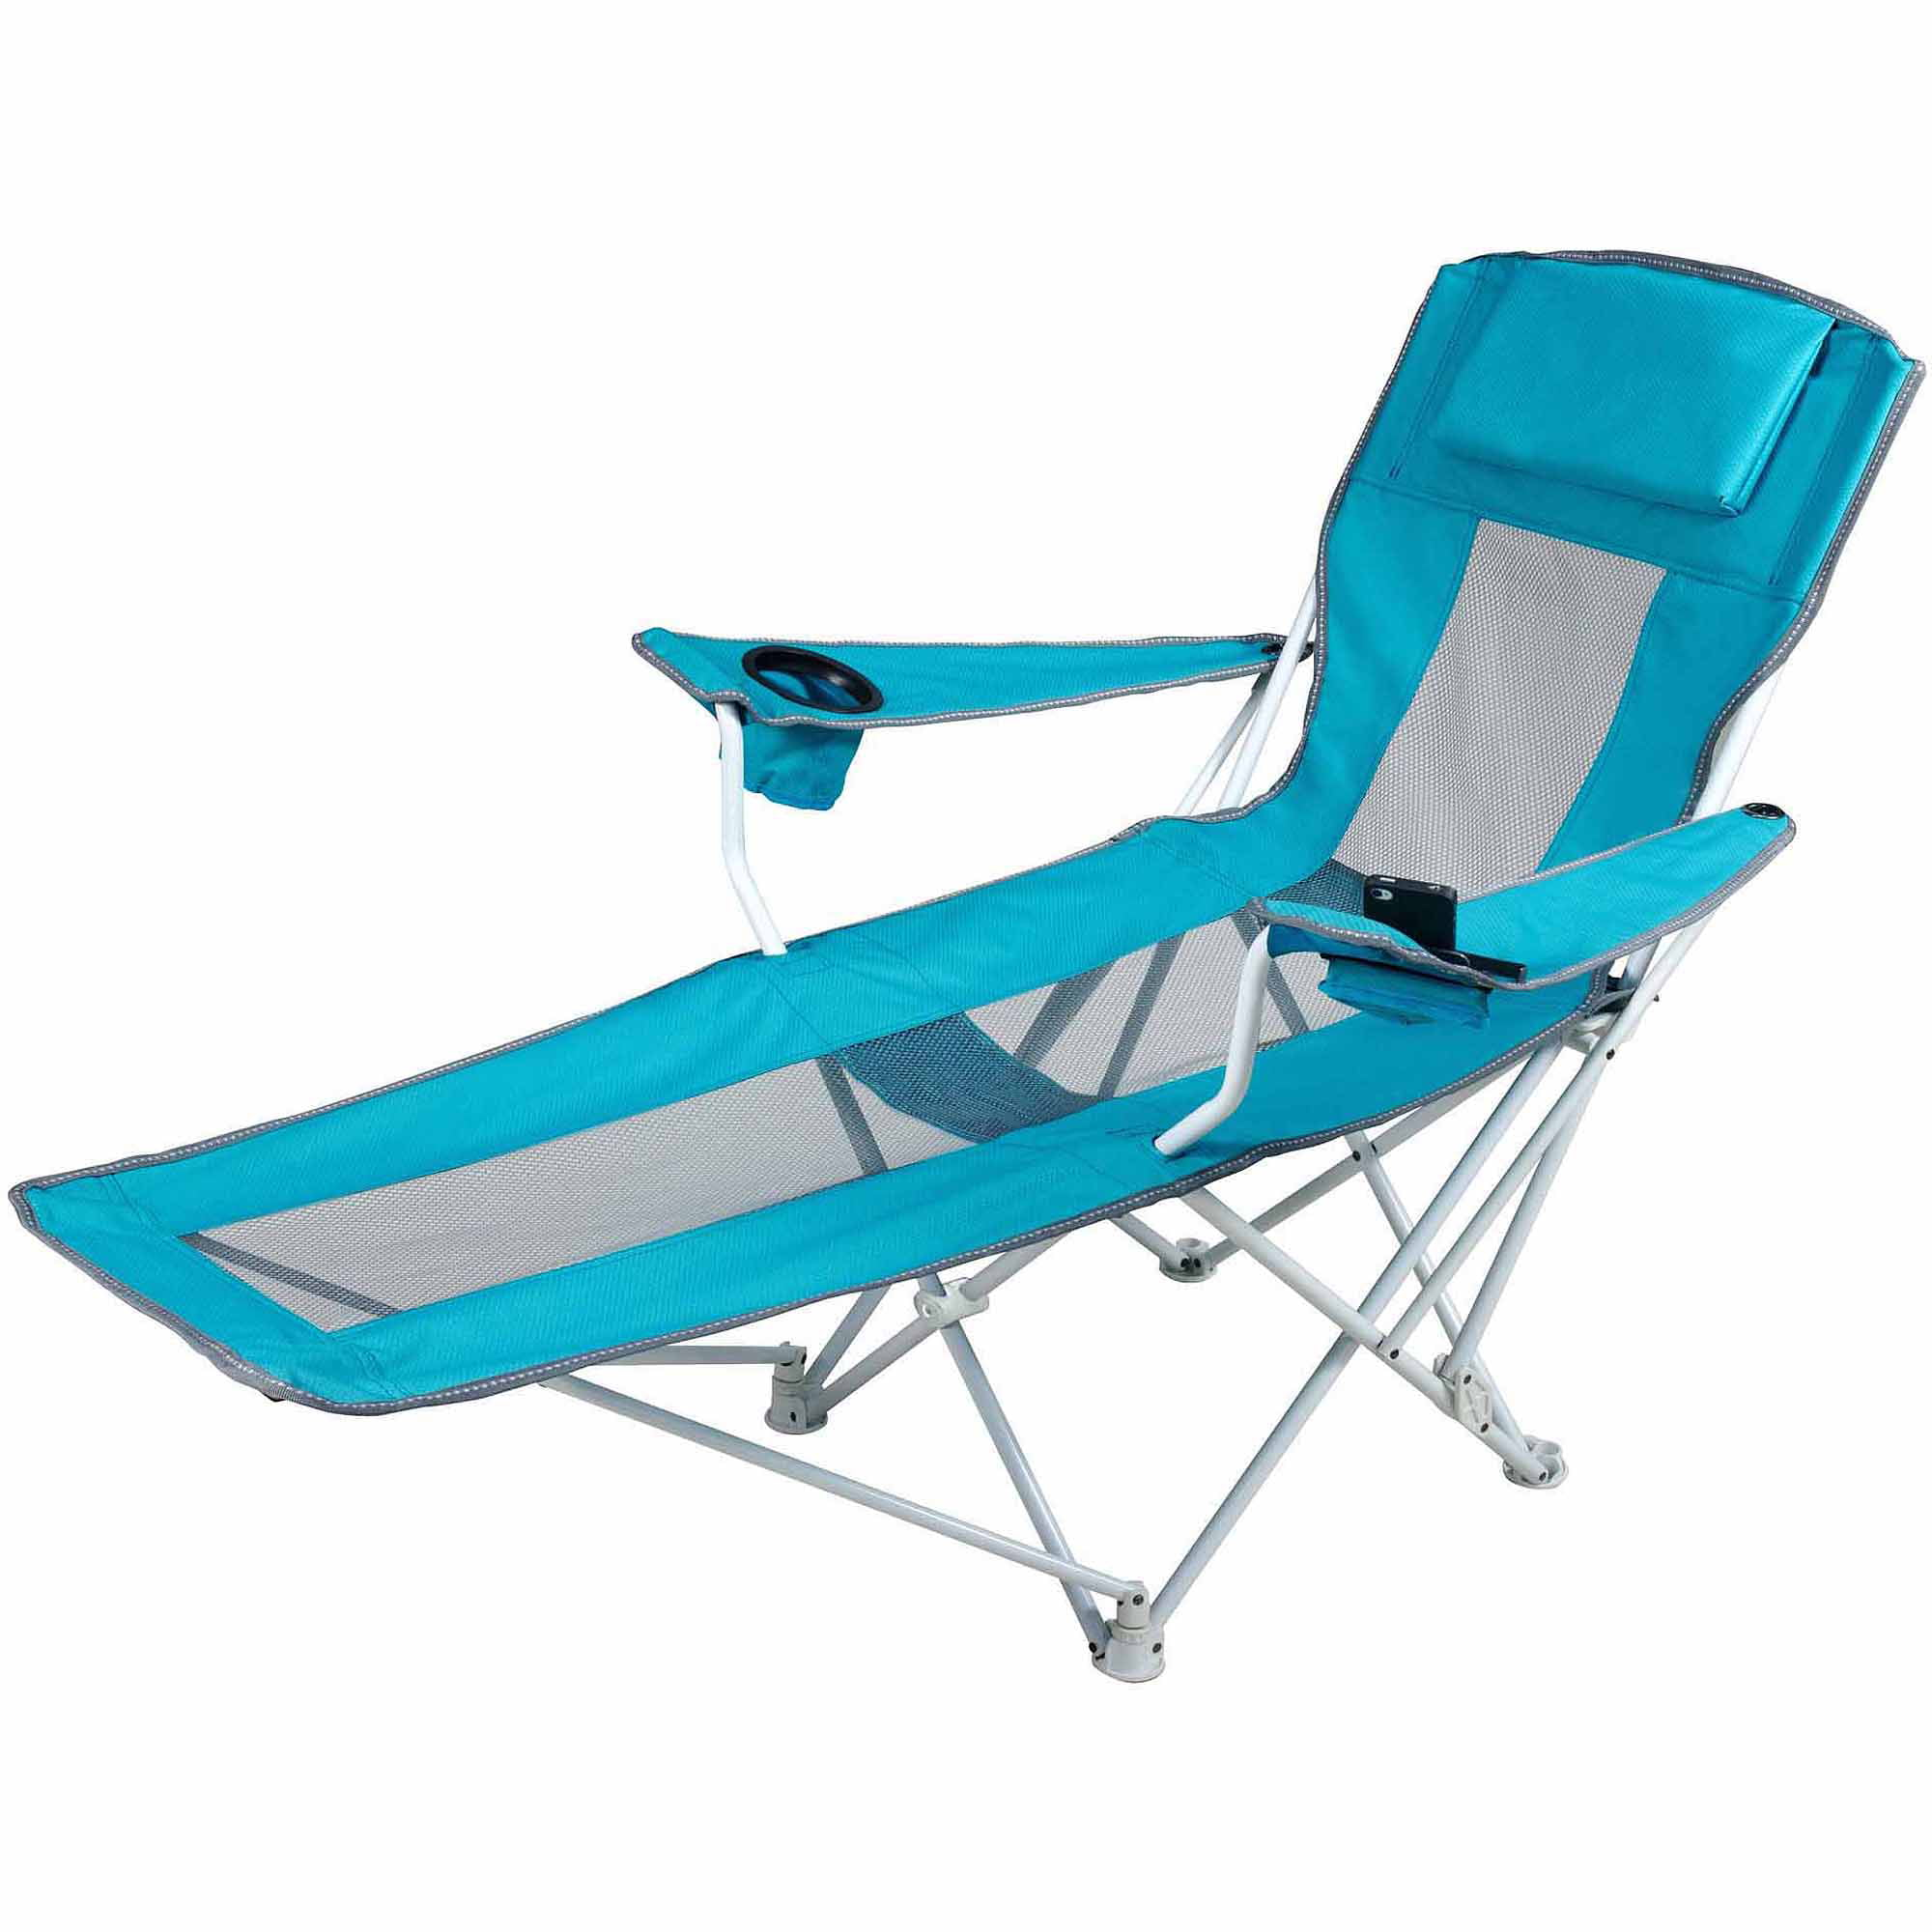 Double Camping Chair Quik Shade Beach Chair